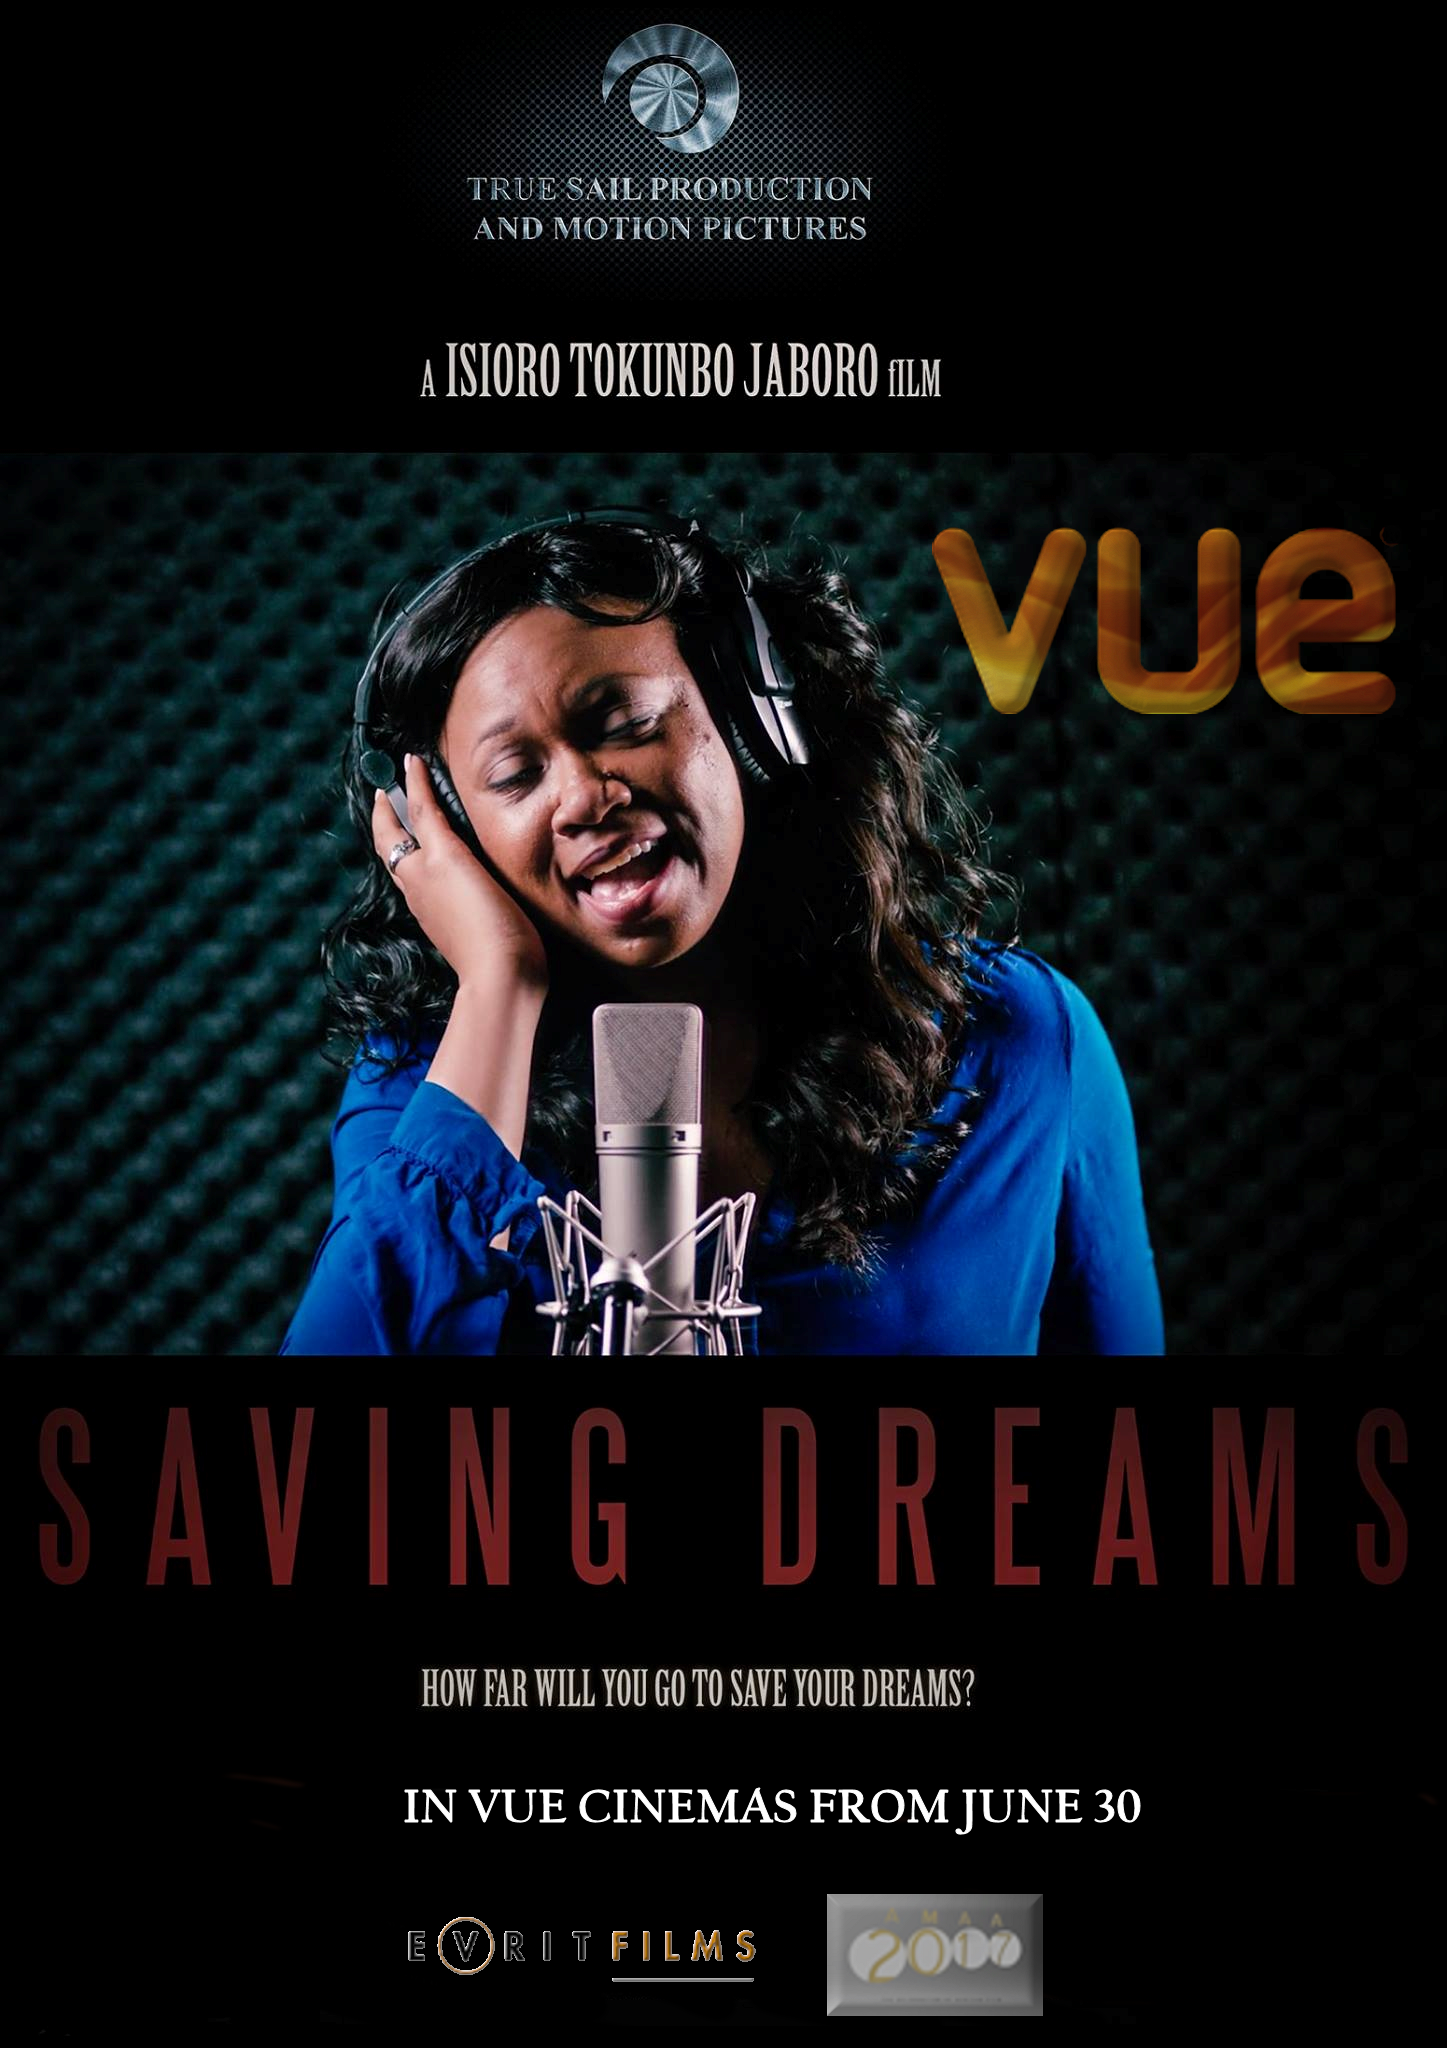 Saving Dreams_Brenda_Single.png VUE